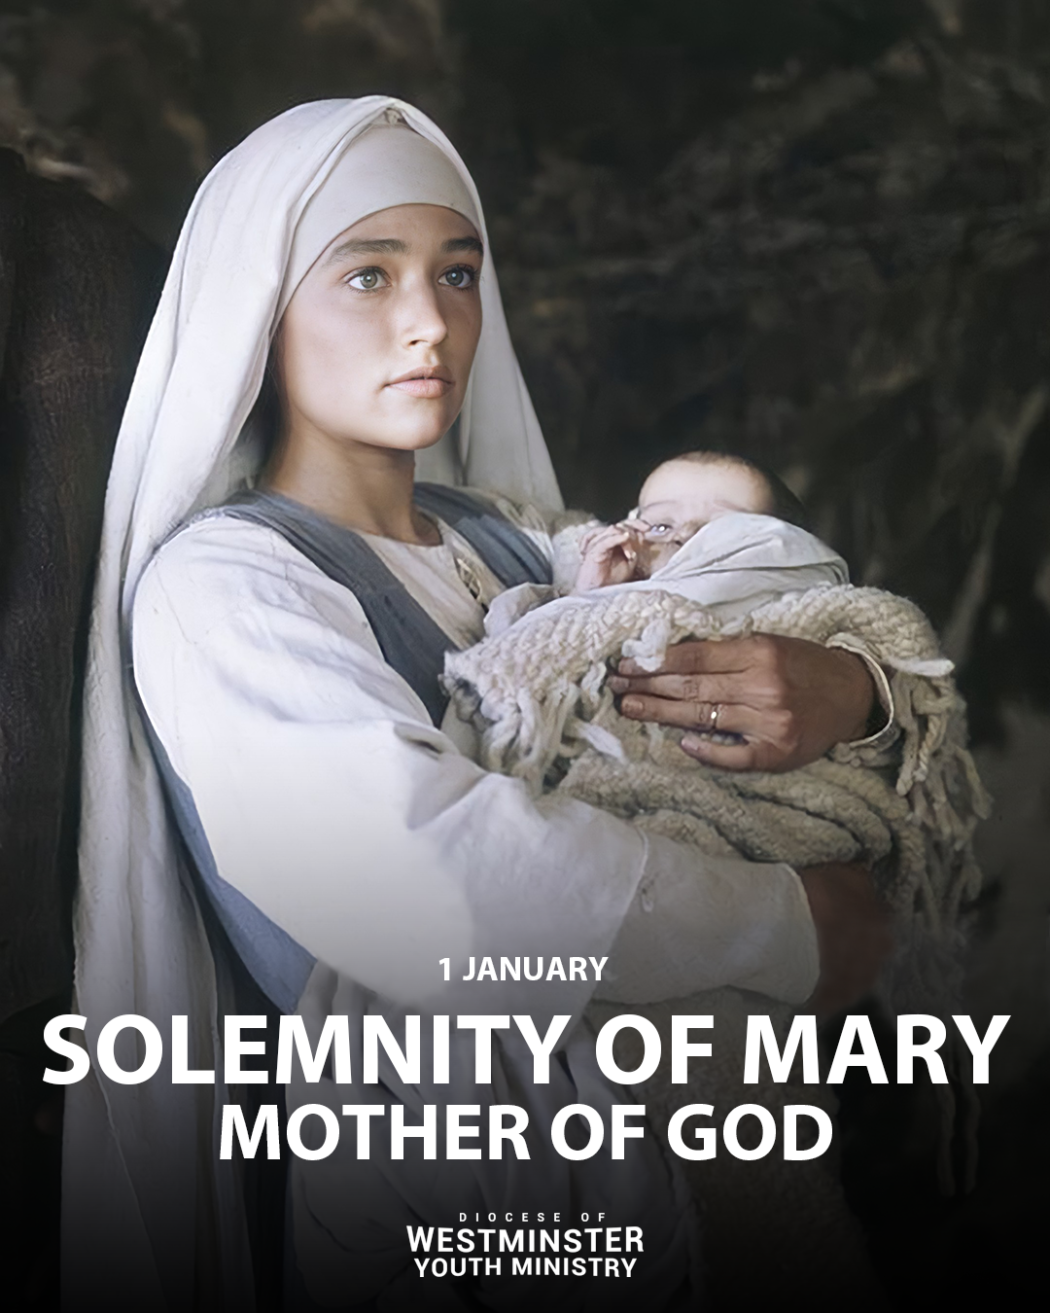 Mary Mother of Jesus Son of God